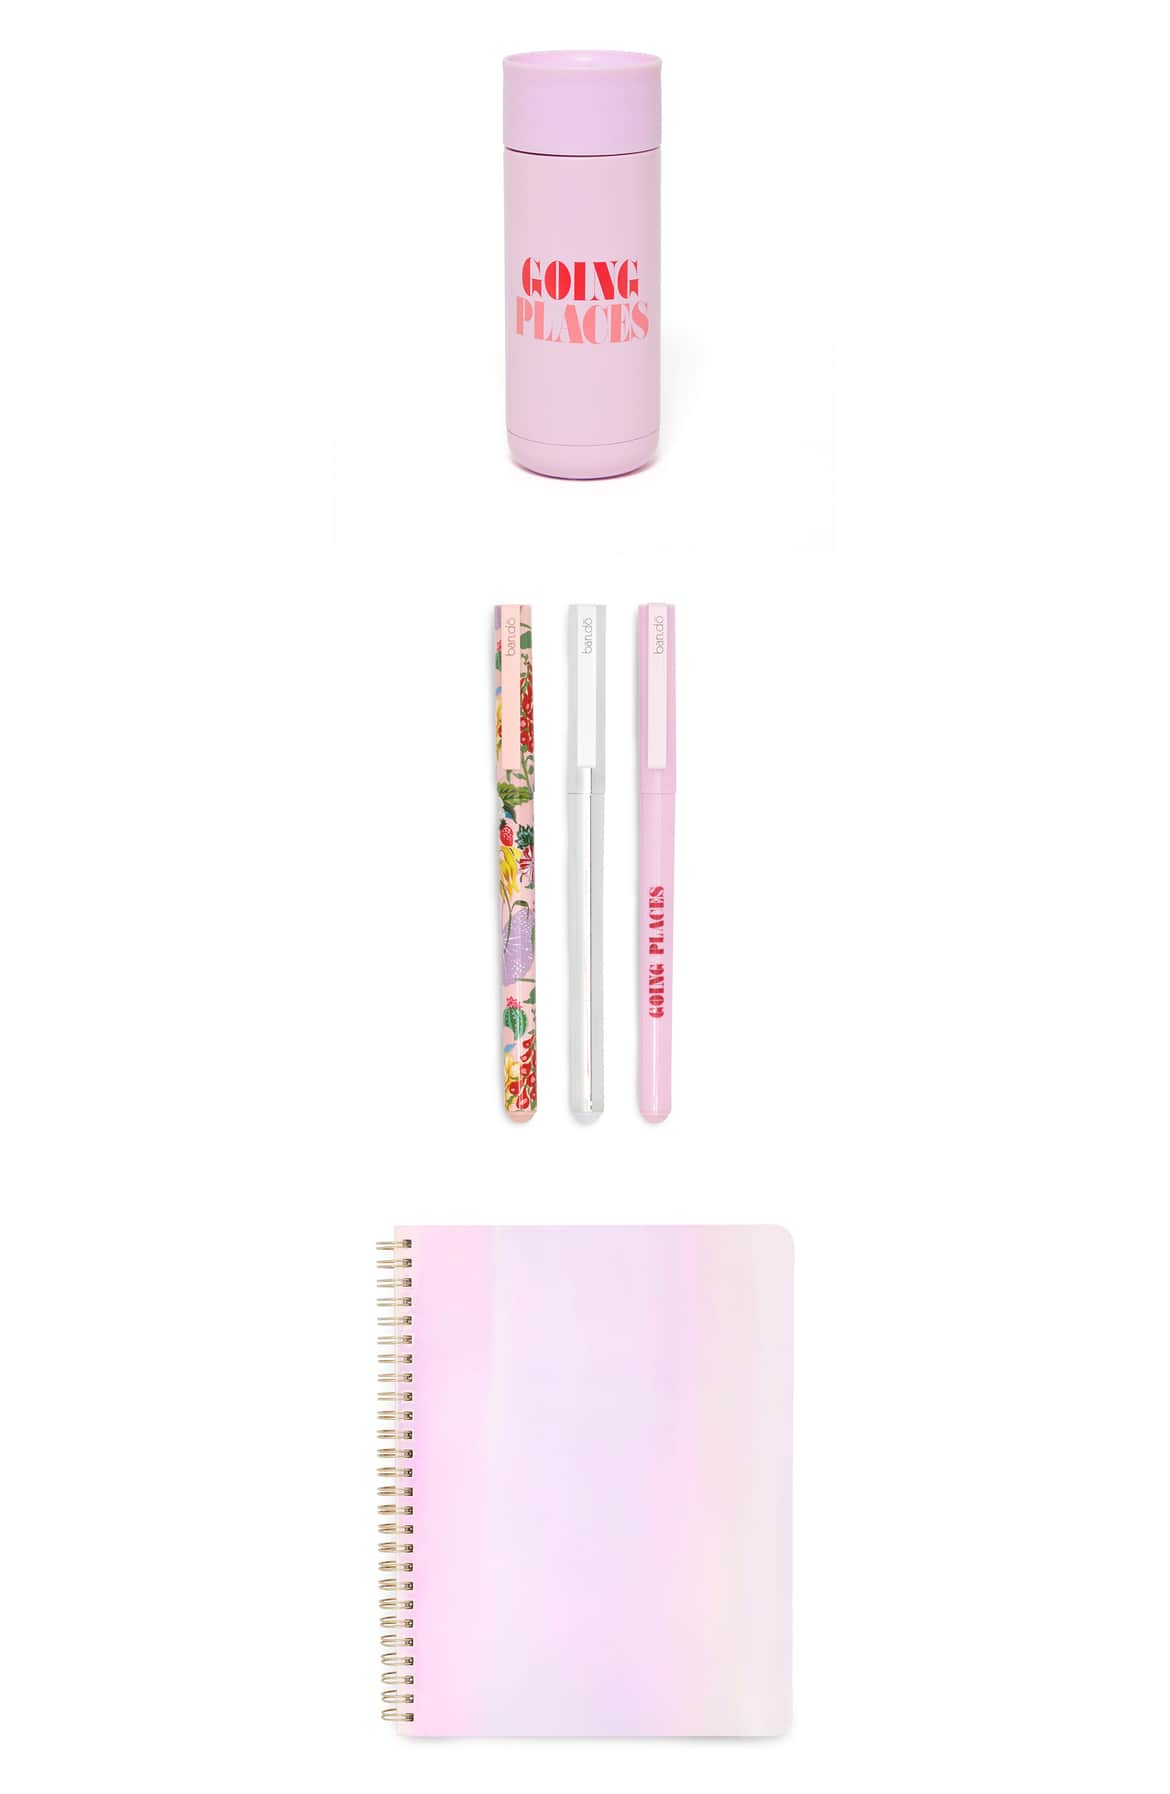 <p>For the constant traveler or creative, this mug, notebook and pen trio set will suit their active life and mind in pretty, whimsical style.{&amp;nbsp;}Price $54.00. (Image: Nordstrom){&amp;nbsp;}</p><p></p>